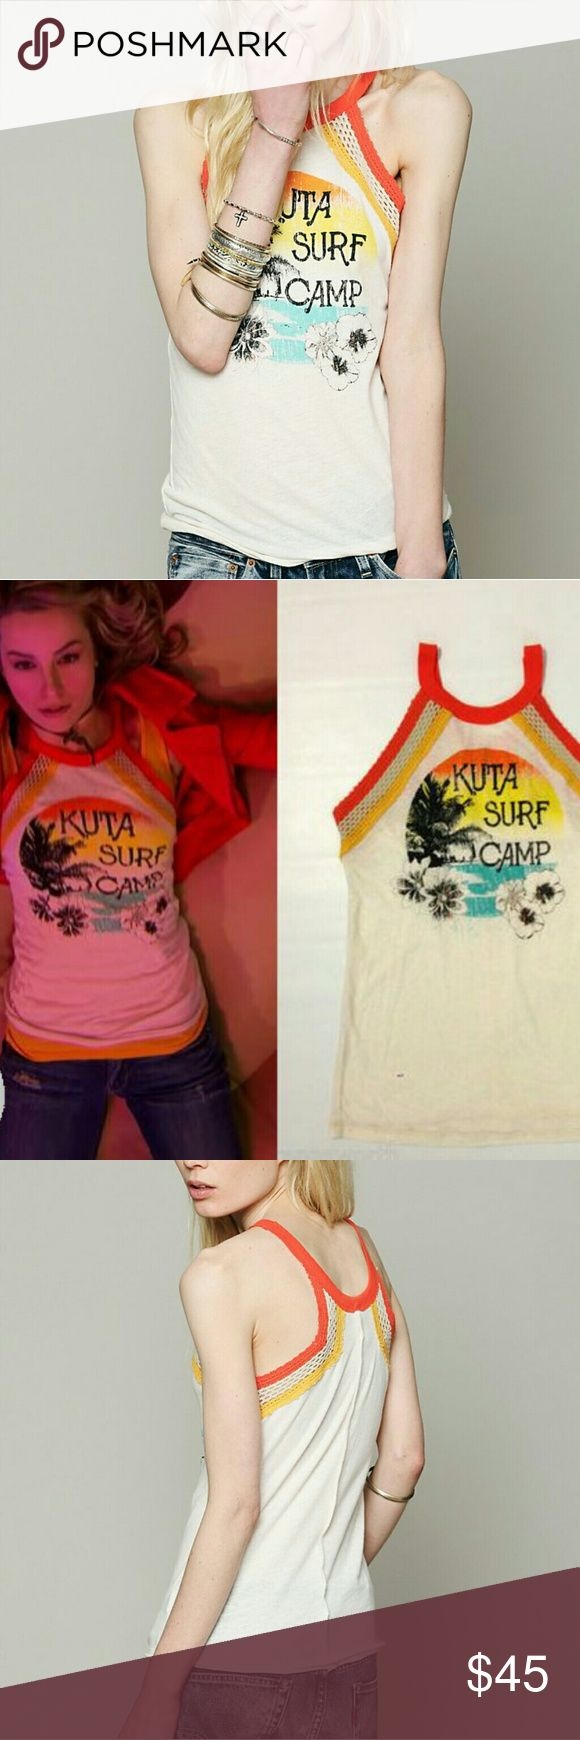 Free People Royal Rumble Tank Free people- We the Free- Royal Rumble Tank. Cool kuta surf camp tank w/ crochet top. As seen on Teddy Duncan (Bridget Mendler) on the show Goodluck Charlie. Sold out everywhere online, so, get it while you can!  *mahalo for your interest* Free People Tops Tank Tops